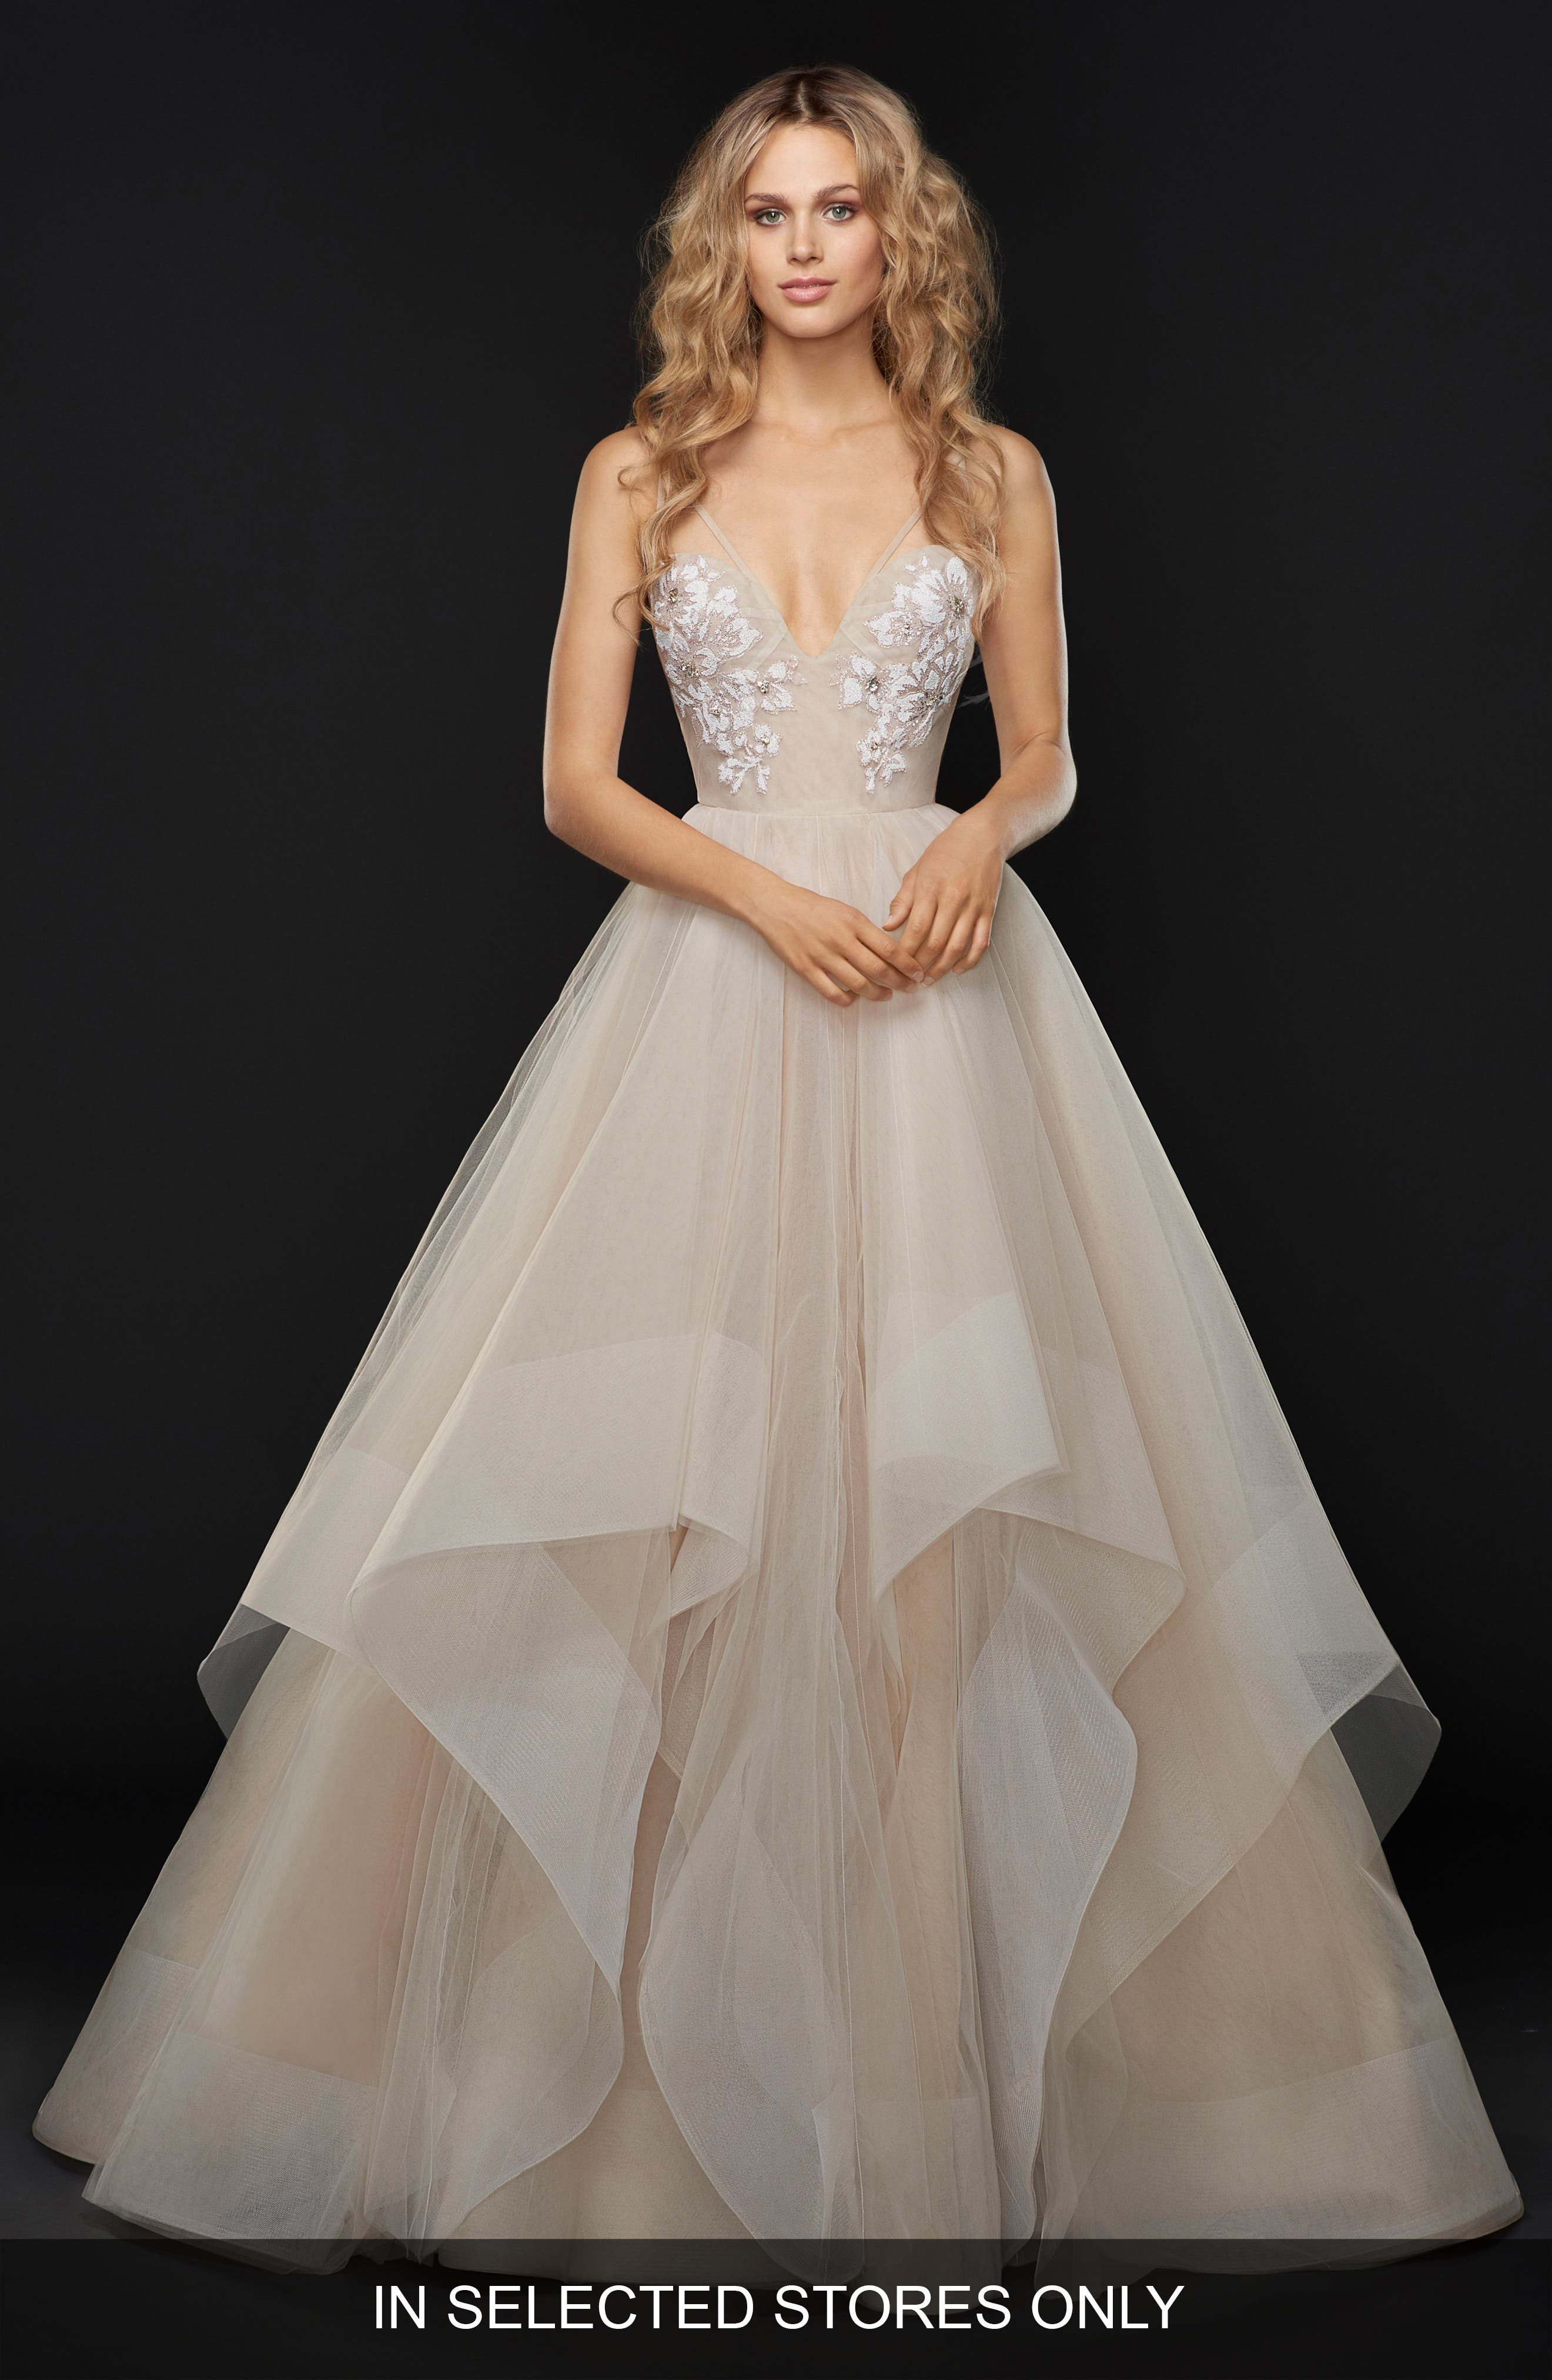 Keagan Embellished Tulle Ballgown,                             Main thumbnail 1, color,                             SWEET HONEY BEE